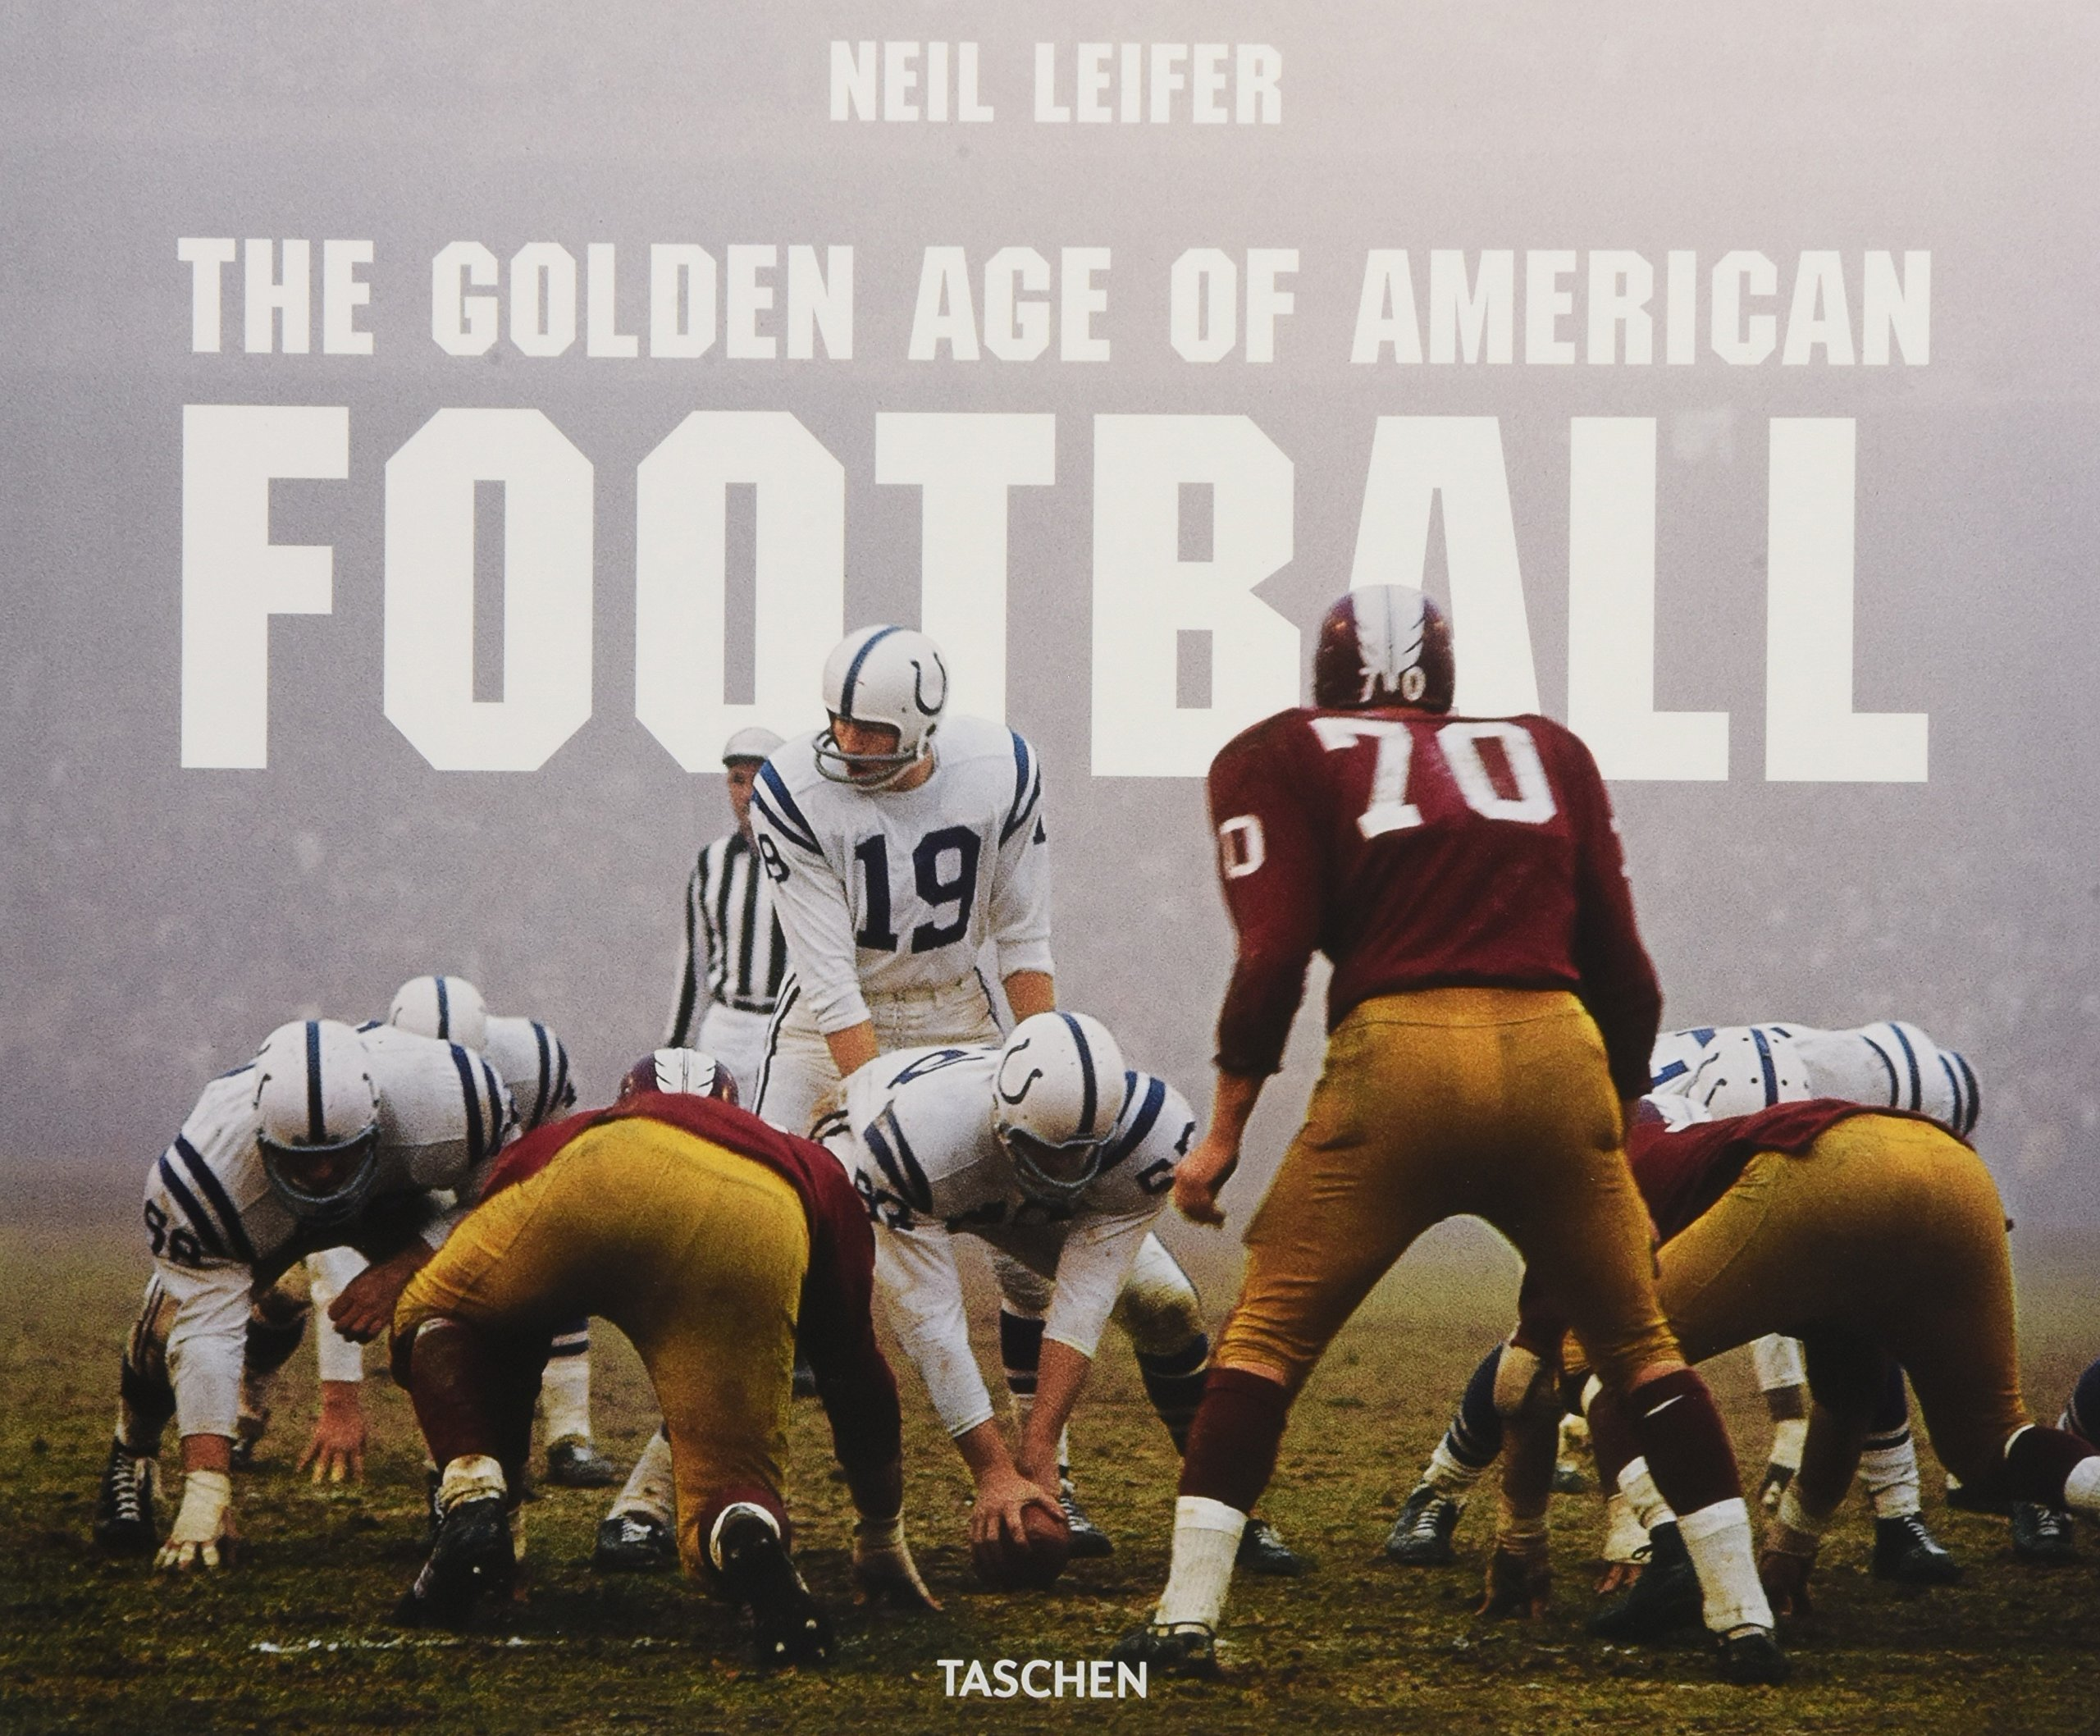 Leifer  The Golden Age of American Football Hardcover – July 30 a4b3d2745203e